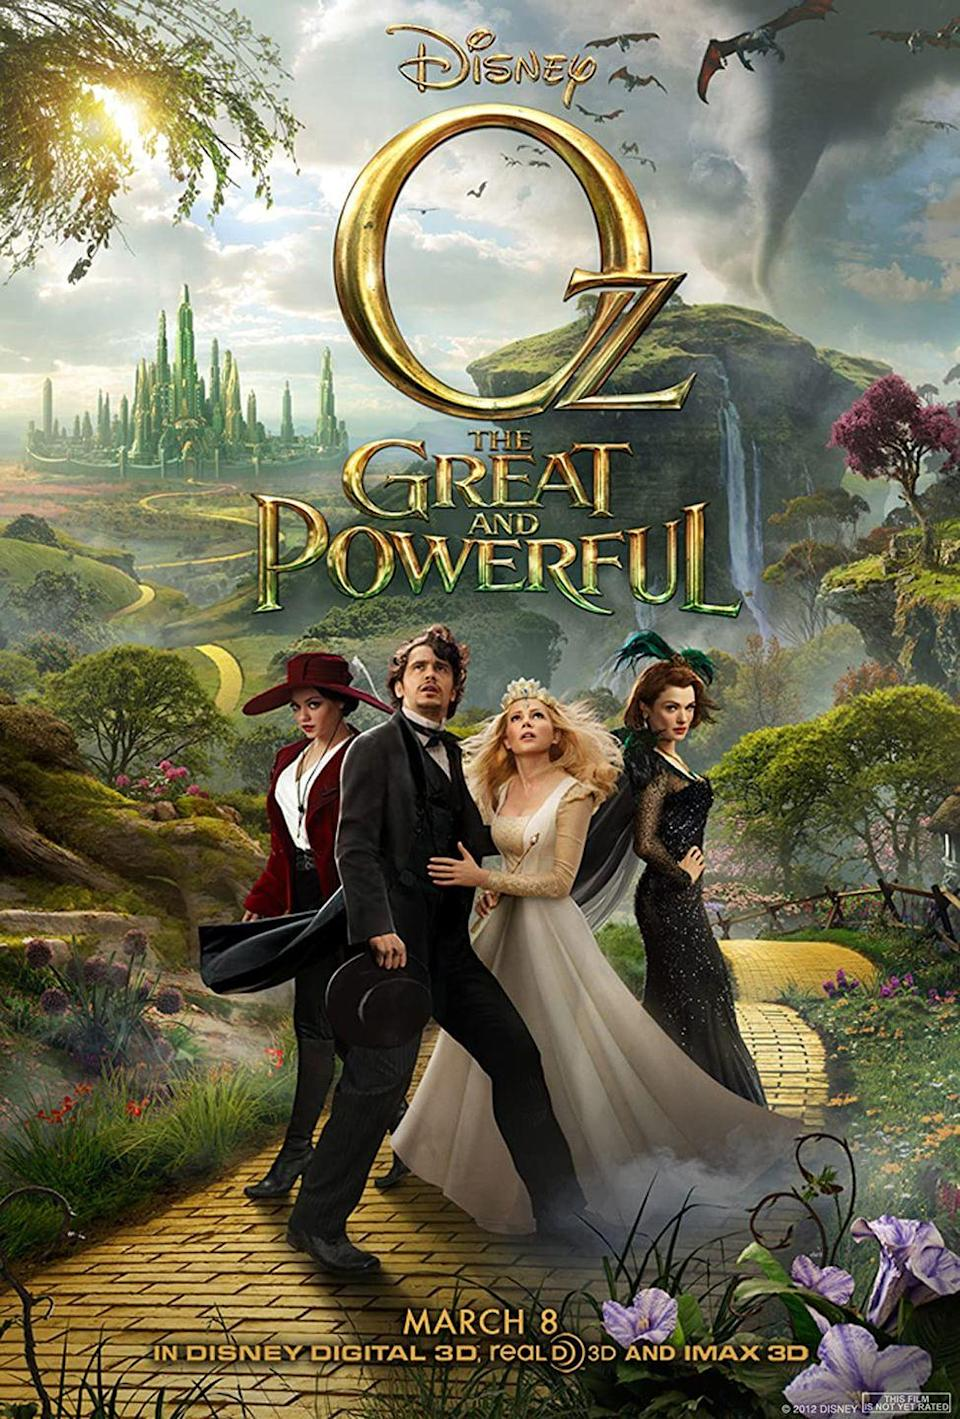 """<p>What's better than one story of Oz on this list of witch movies? <em>Two</em> stories of Oz! In this origin story, we learn how Oz came to be a powerful wizard. It stars James Franco along with Mila Kunis, Rachel Weisz, and Michelle William as the witches.<br></p><p><a class=""""link rapid-noclick-resp"""" href=""""https://www.amazon.com/Oz-Great-Powerful-James-Franco/dp/B00CLZ48FA?tag=syn-yahoo-20&ascsubtag=%5Bartid%7C10070.g.37360837%5Bsrc%7Cyahoo-us"""" rel=""""nofollow noopener"""" target=""""_blank"""" data-ylk=""""slk:WATCH NOW"""">WATCH NOW</a></p>"""